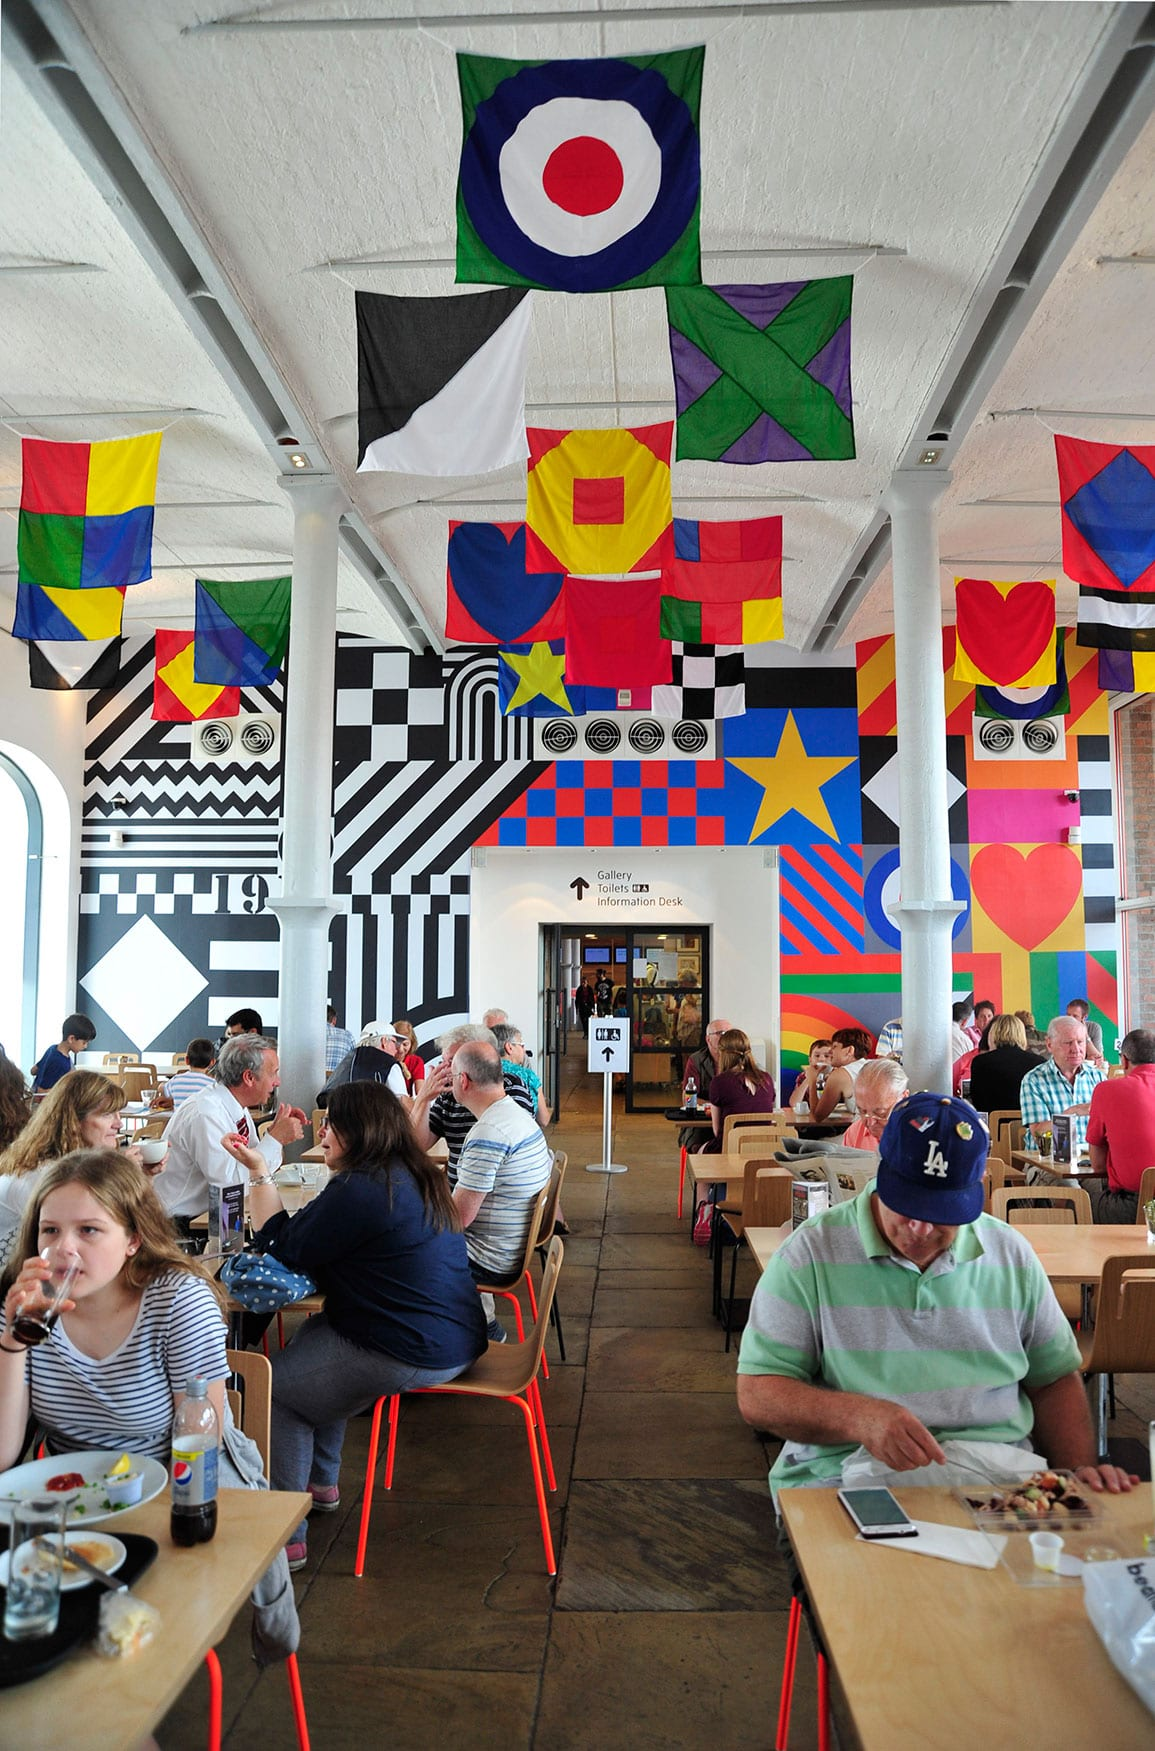 Tate Liverpool Cafe Architectural Emporium Sir Peter Blake